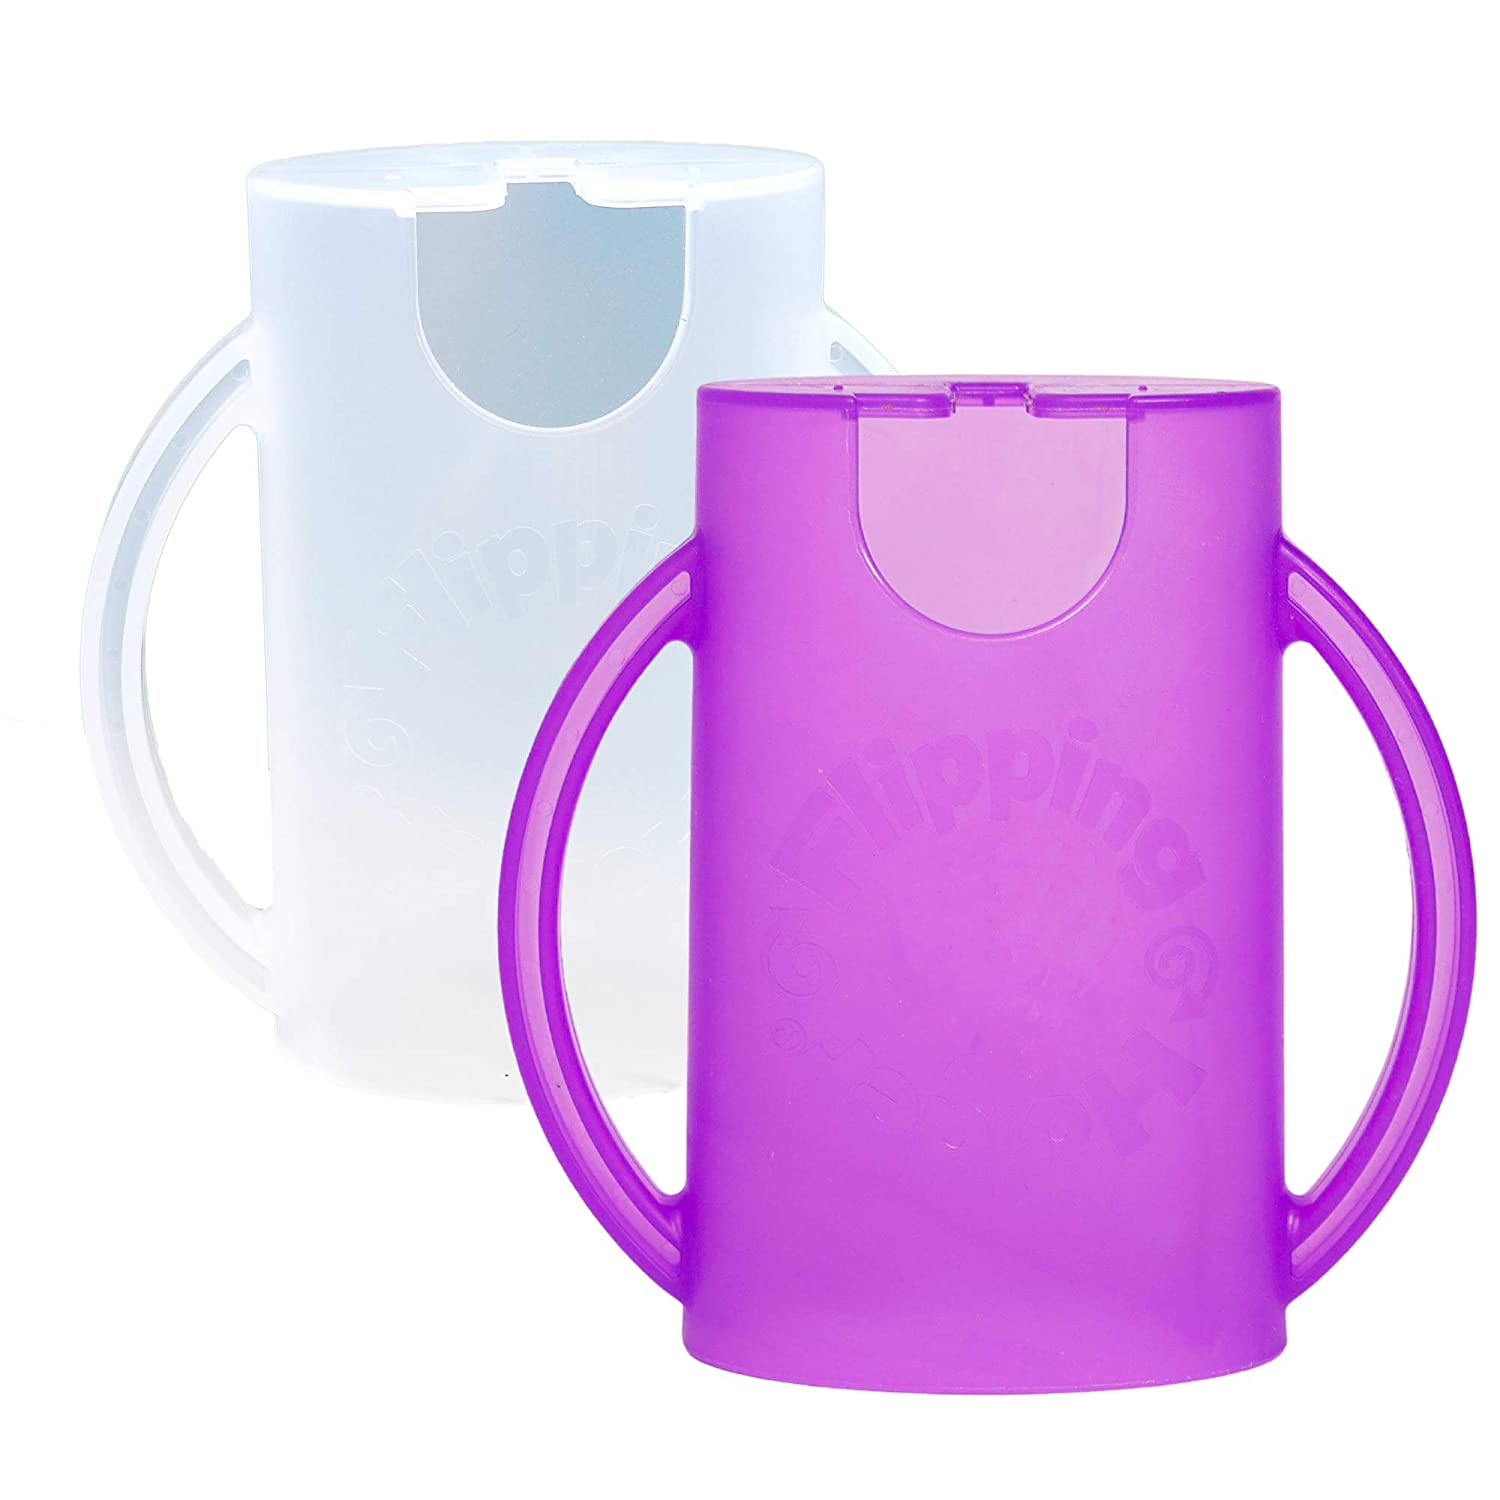 Flipping Holder, Multipurpose Squeeze-Proof Food Pouch Holder and Juice Box Holder (One White, One Purple)